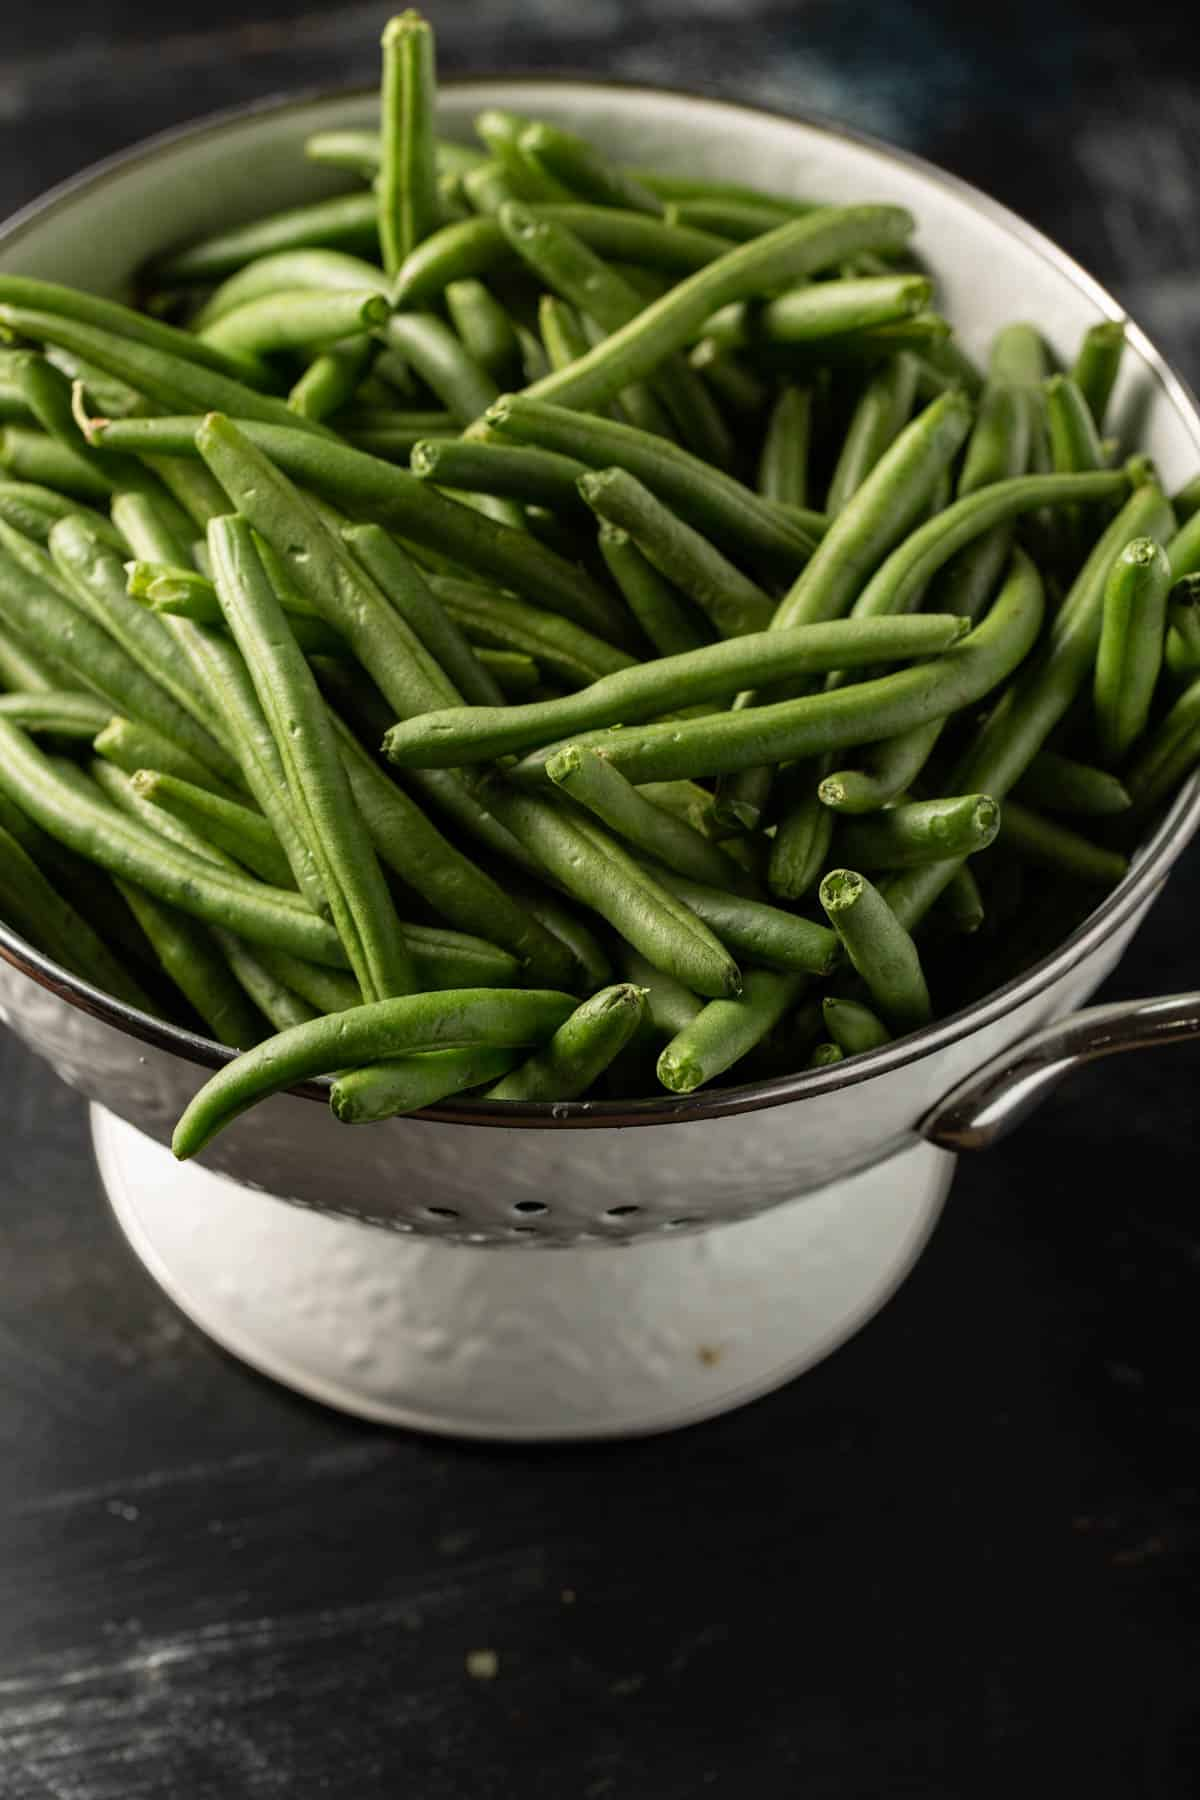 A colander of green beans